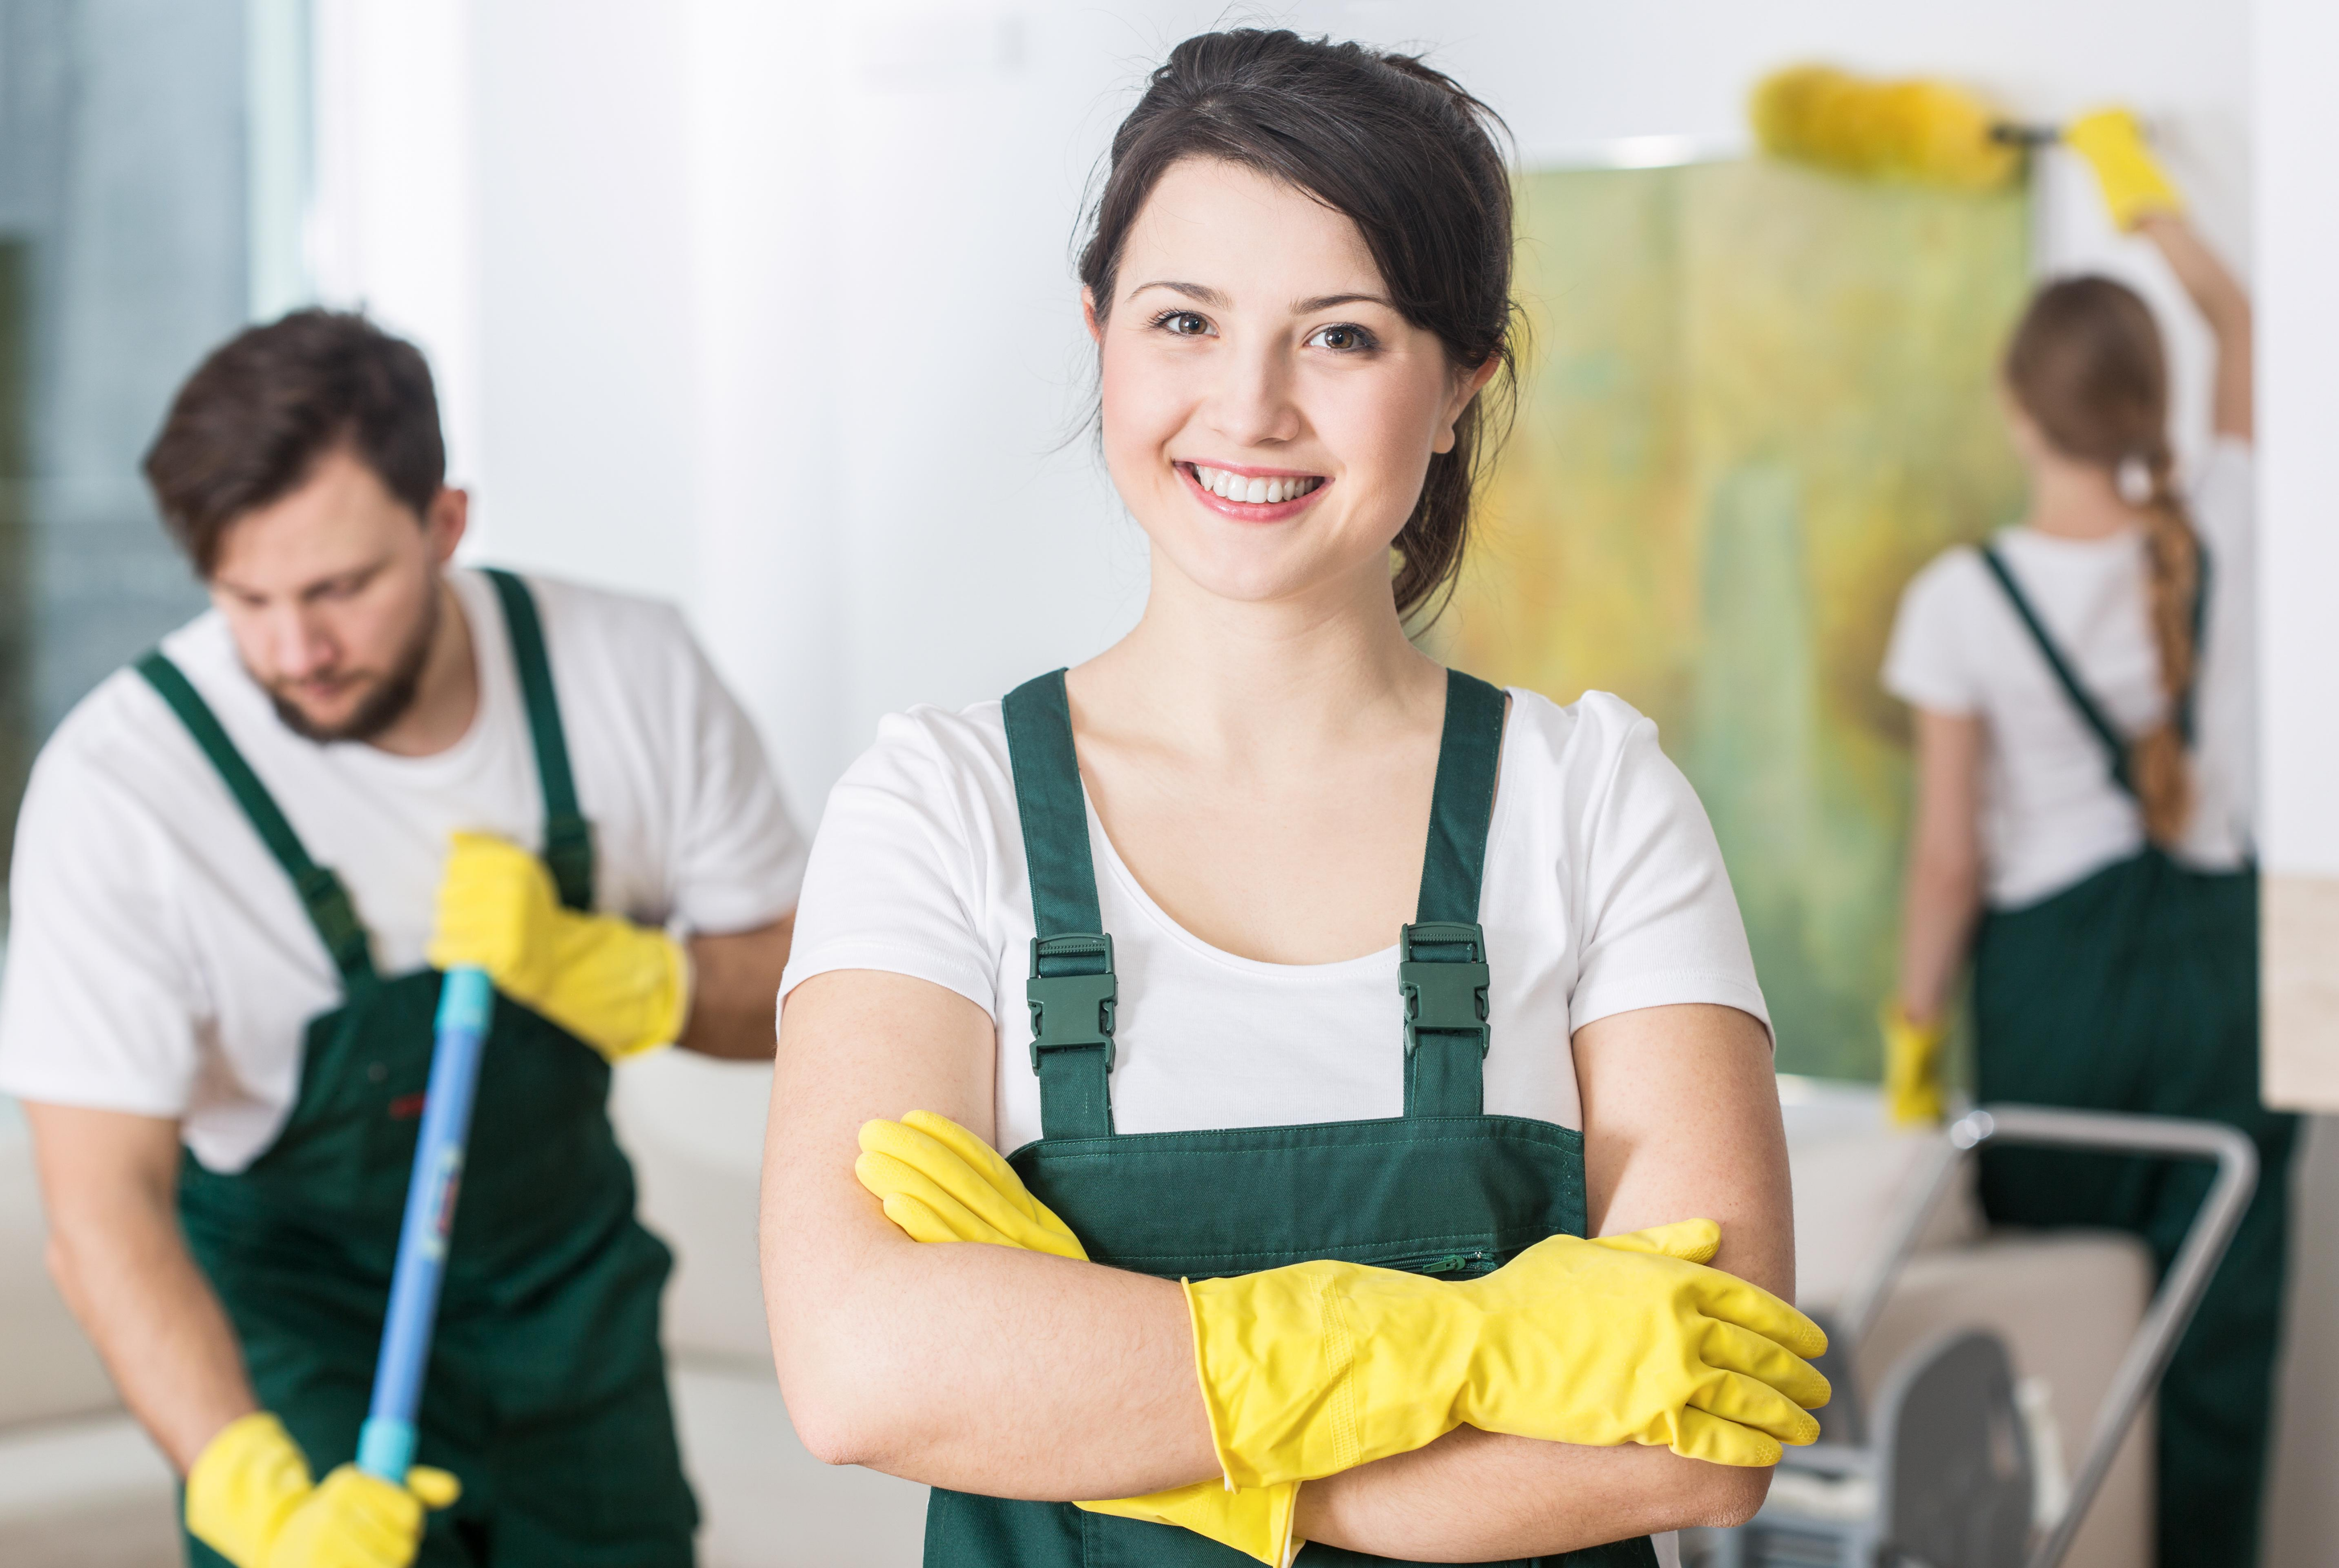 _Cleaning Services in Finchley